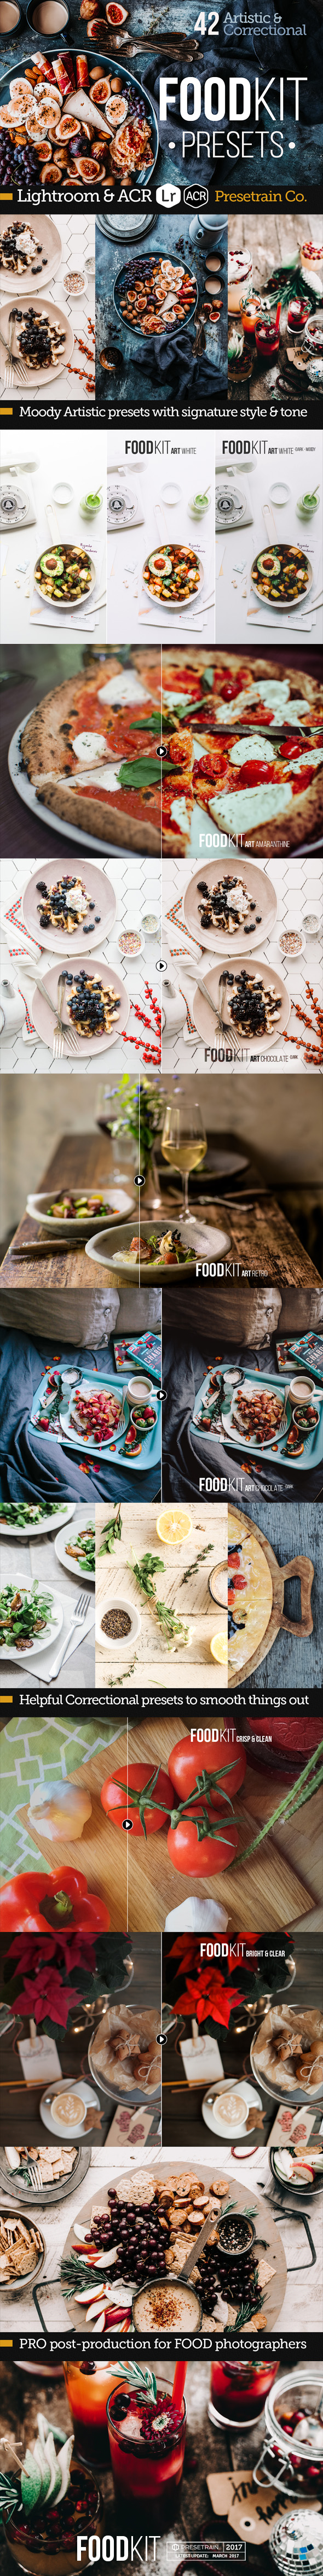 FoodKit - 42 Food Presets for Lightroom & ACR - Lightroom Presets Add-ons